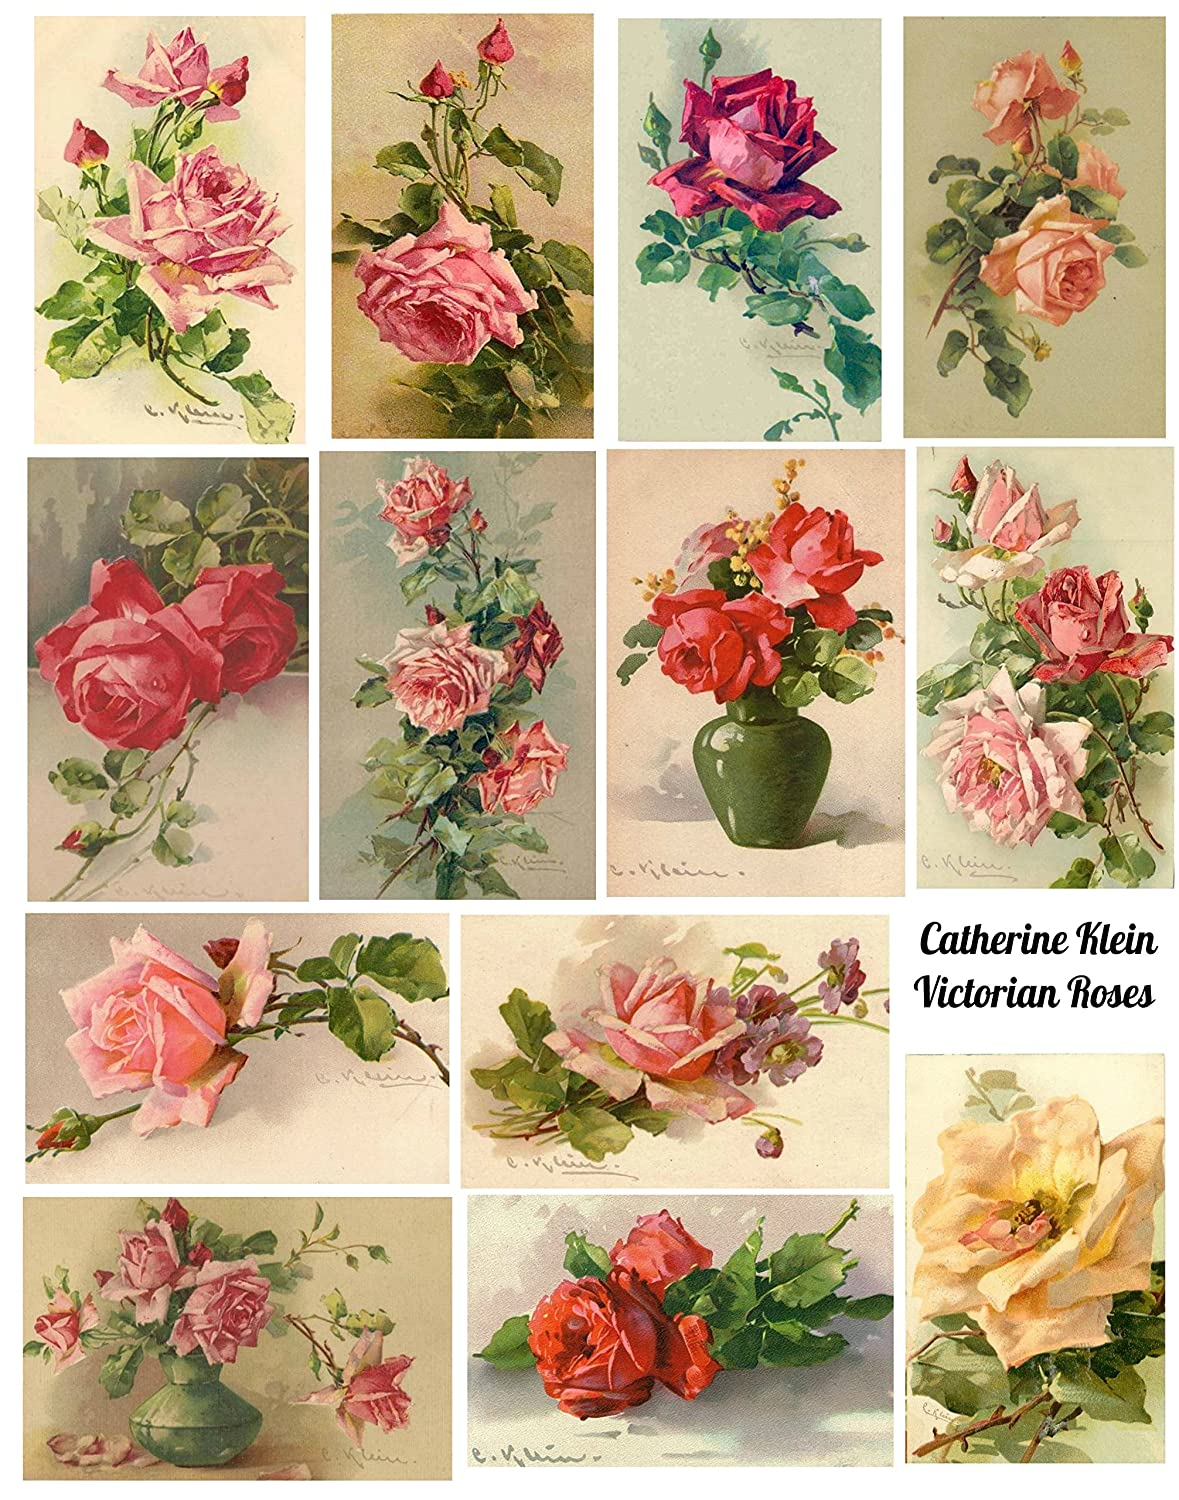 Catherine Klein Vintage Victorian Roses Collage Sheet 8.5 x 11' Watercolor Roses Art for Scrapbooking, Card Making Paper Moon Media